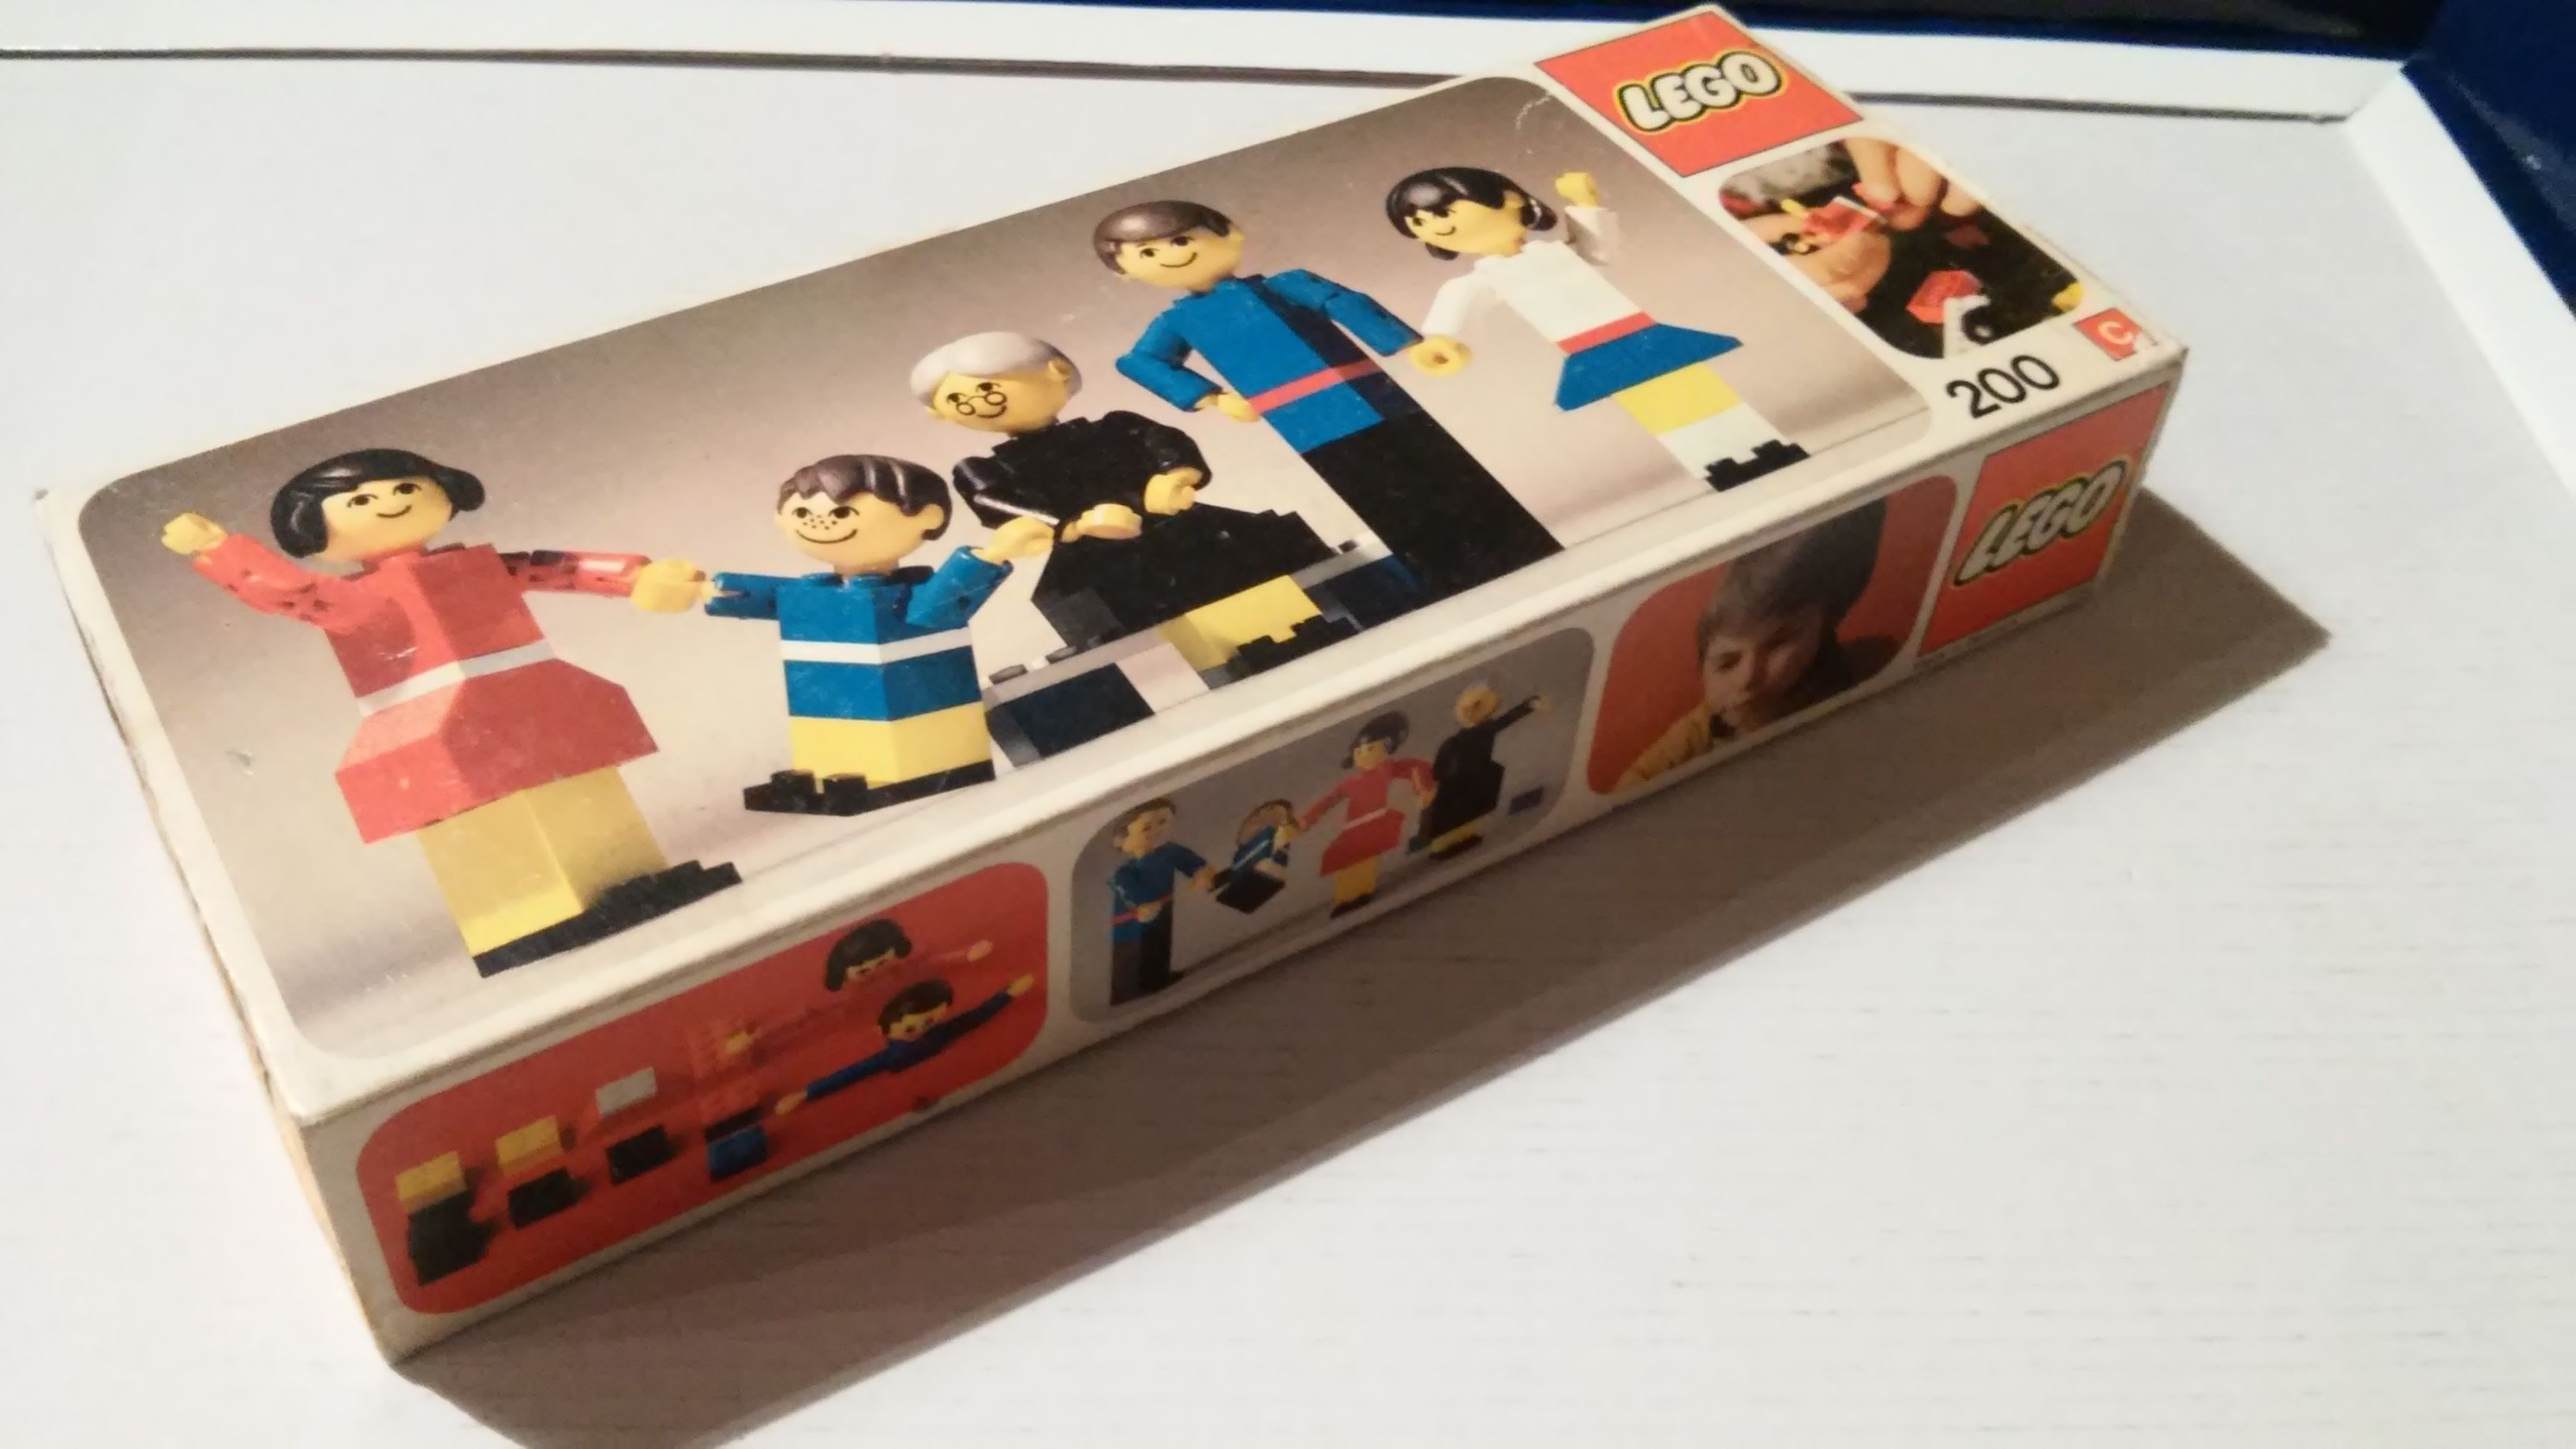 Lego Family Set 200 With Original Box And Instructions For Sale